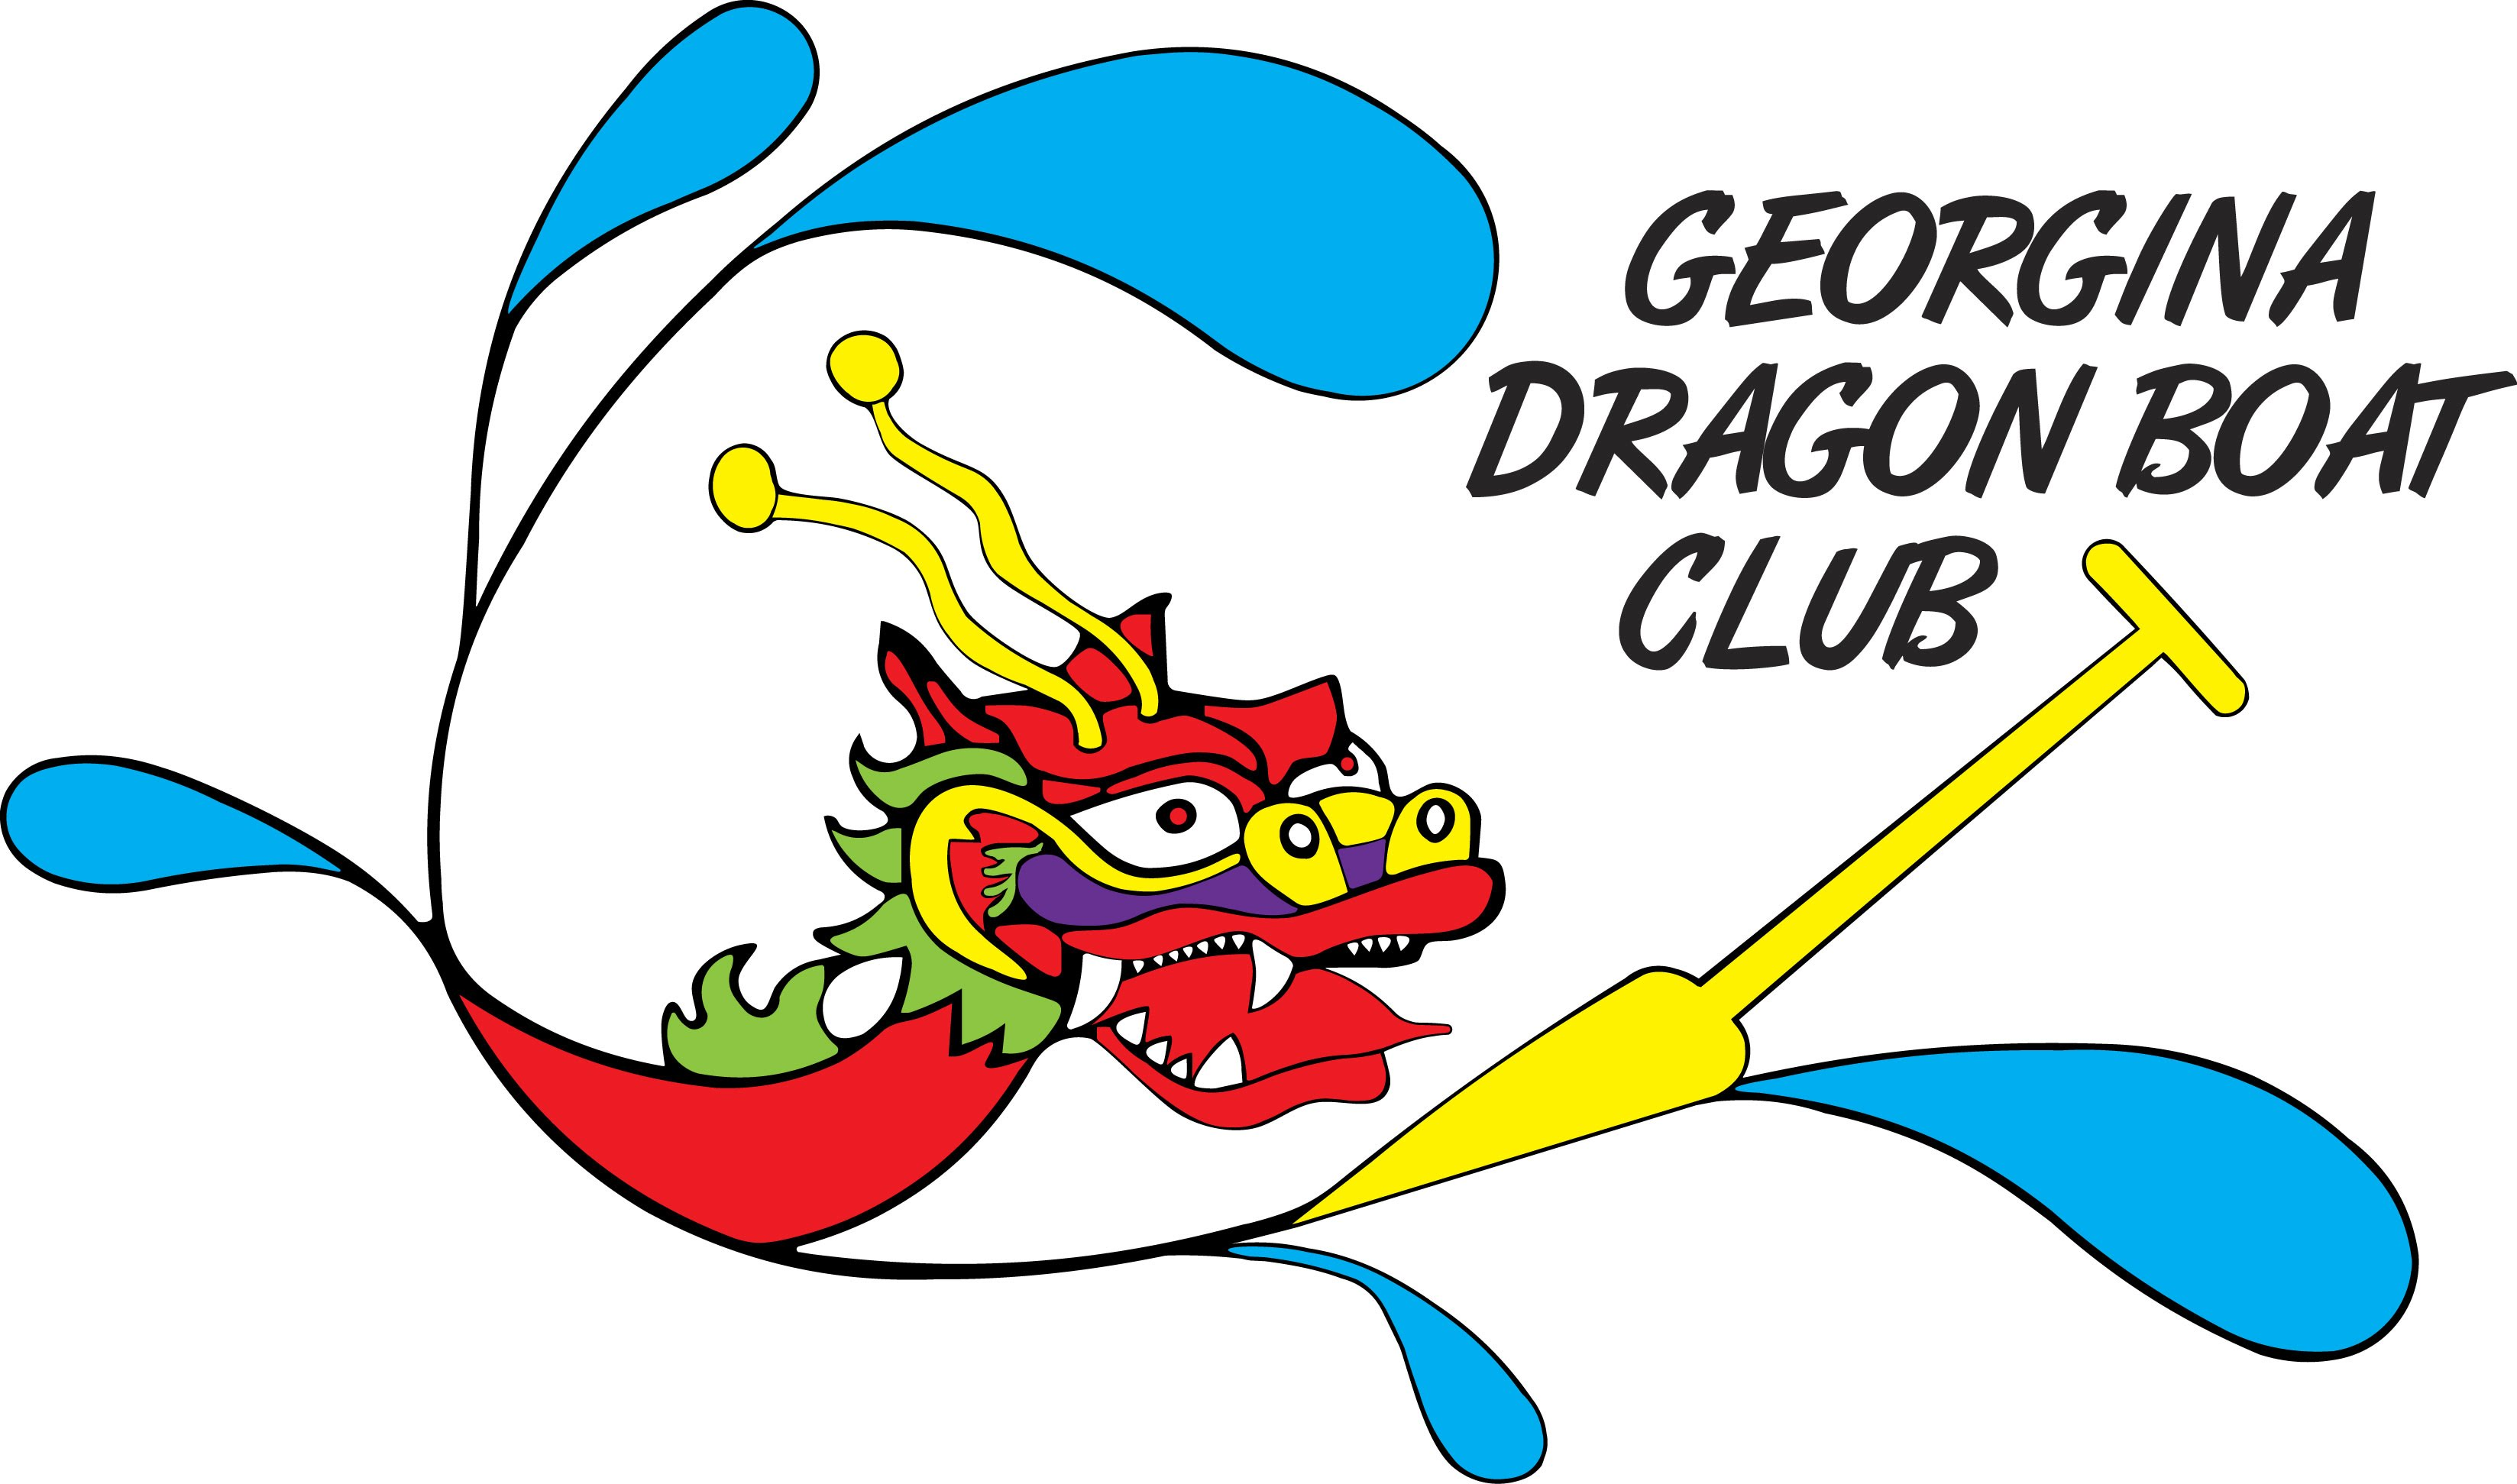 Georgina Dragon Boat Club.